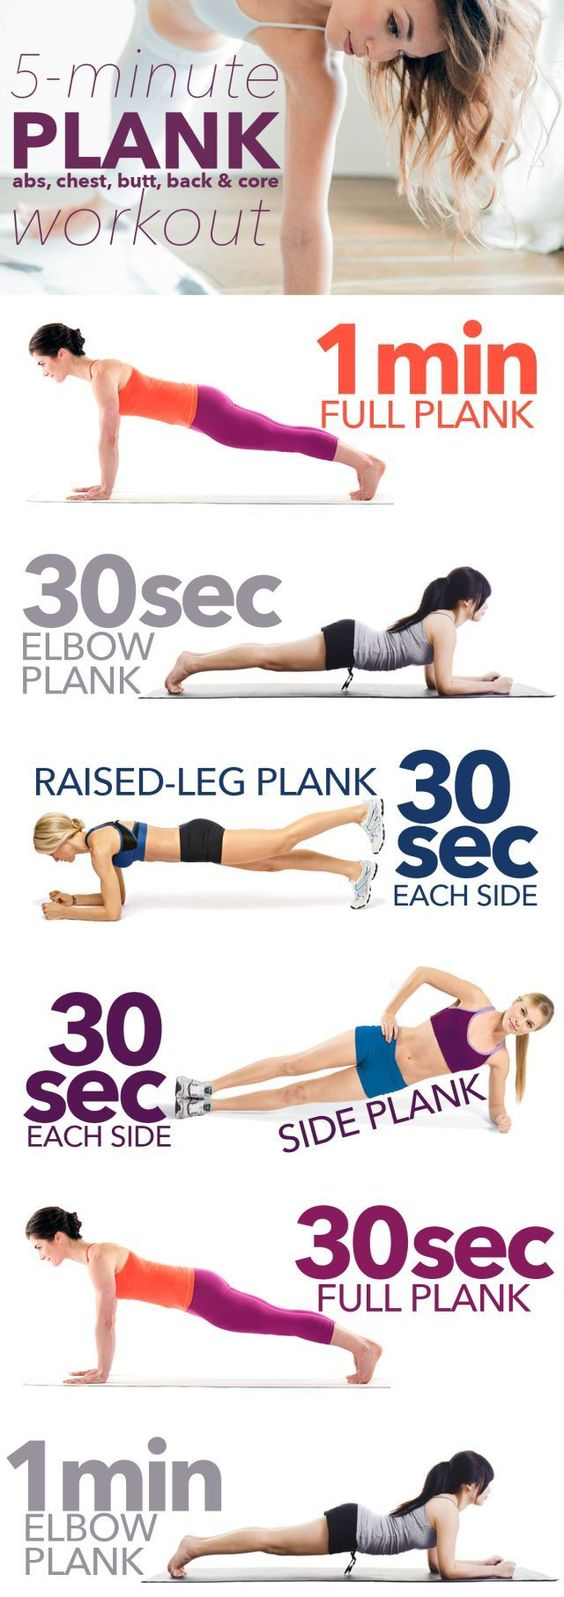 Below are 9 amazing and different ab workouts that you can use to target different areas of your core, so you can mix and match your workouts and keep them fun and challenging with different levels of intensity. Try one out at the end of your workout today and see if you like it! Enjoy!: